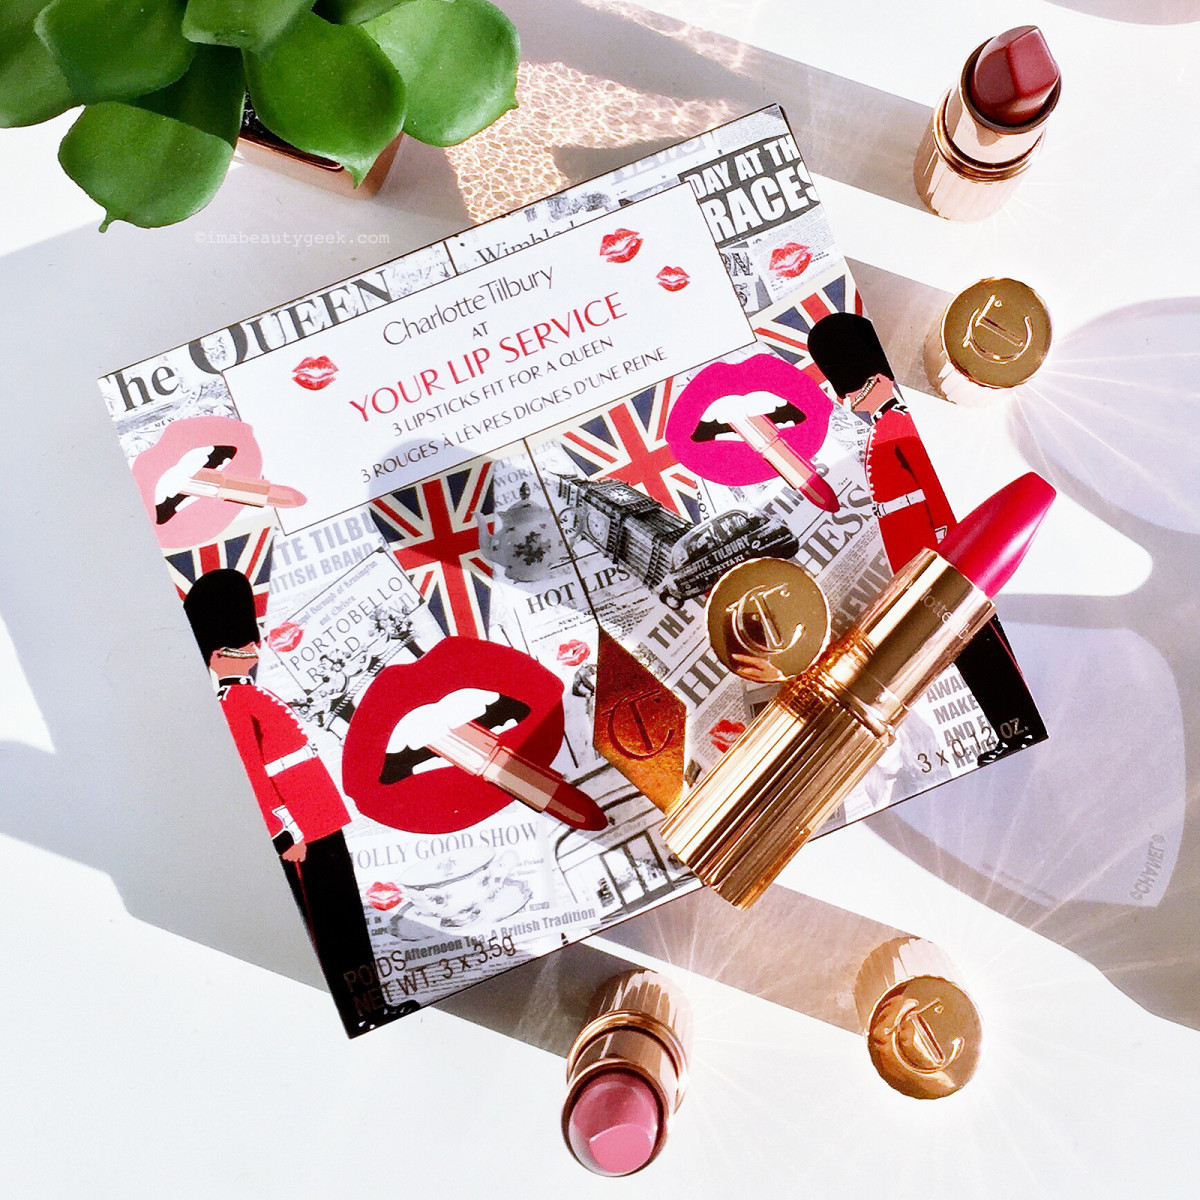 Charlotte Tilbury At Your Lip Service: (top to bottom) Legendary Queen, The Queen, The Duchess